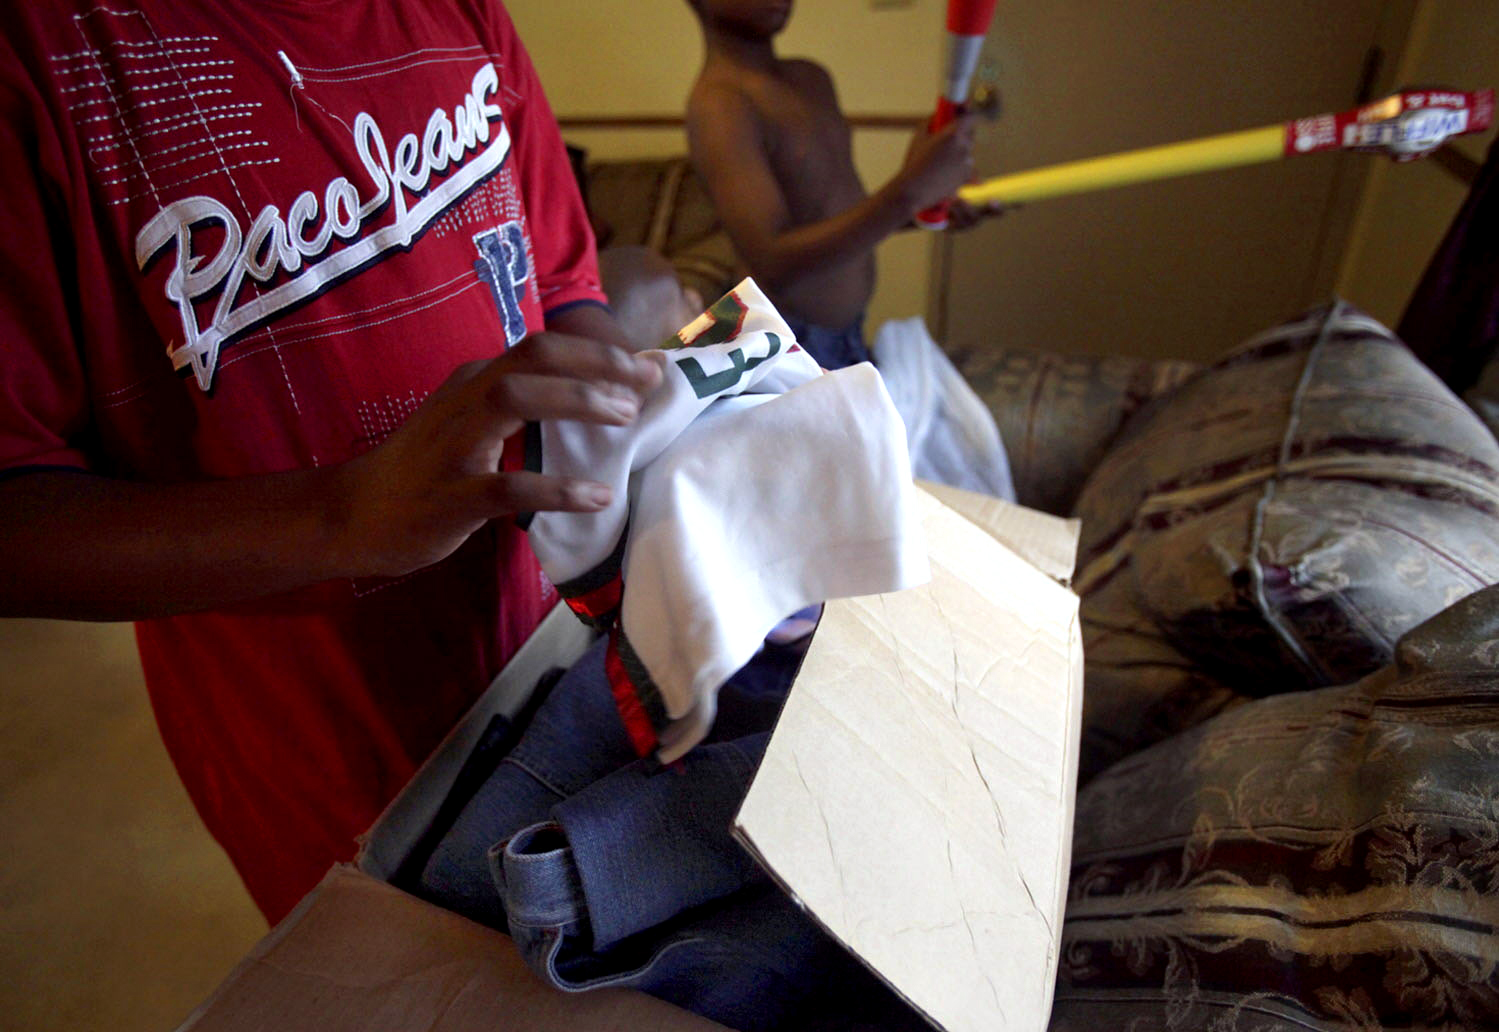 Tae, 12, unpacks his belonging from a cardboard box, which include a Milwaukee Bucks jersey that he has long outgrown. Shakiem, 10, checks out a new whiffle ball set sent from his foster family.